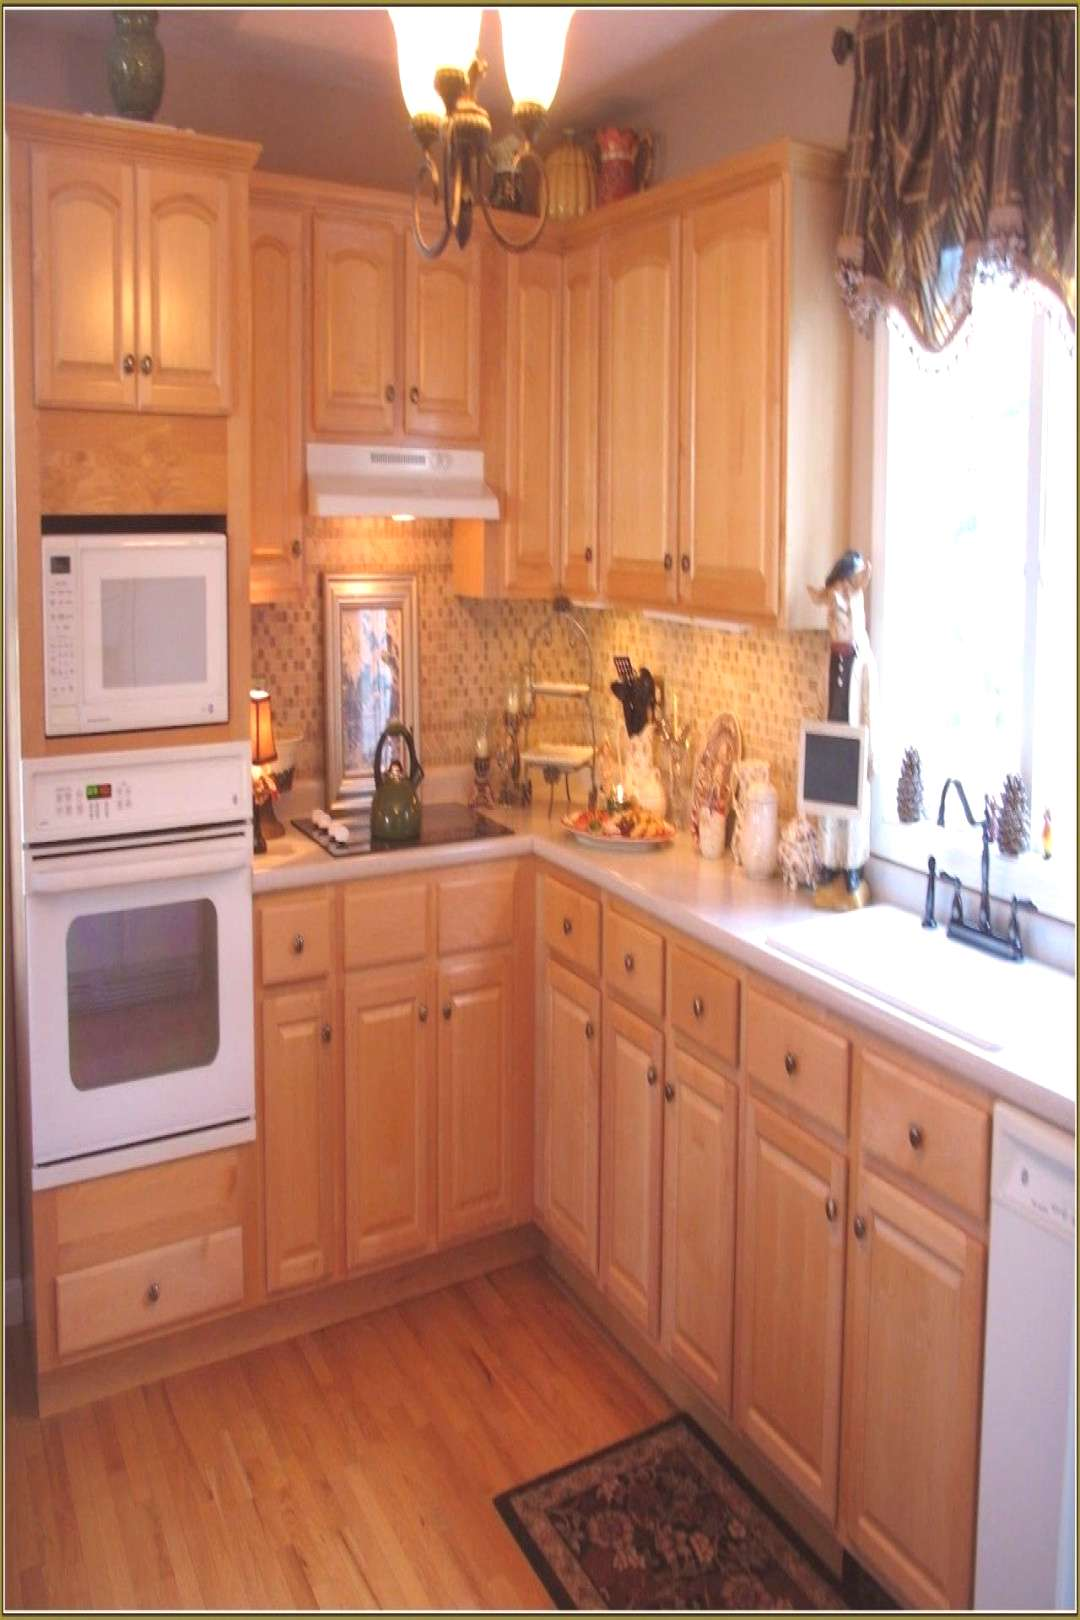 Home Depot Kitchen Cabinets Prices#cabinets